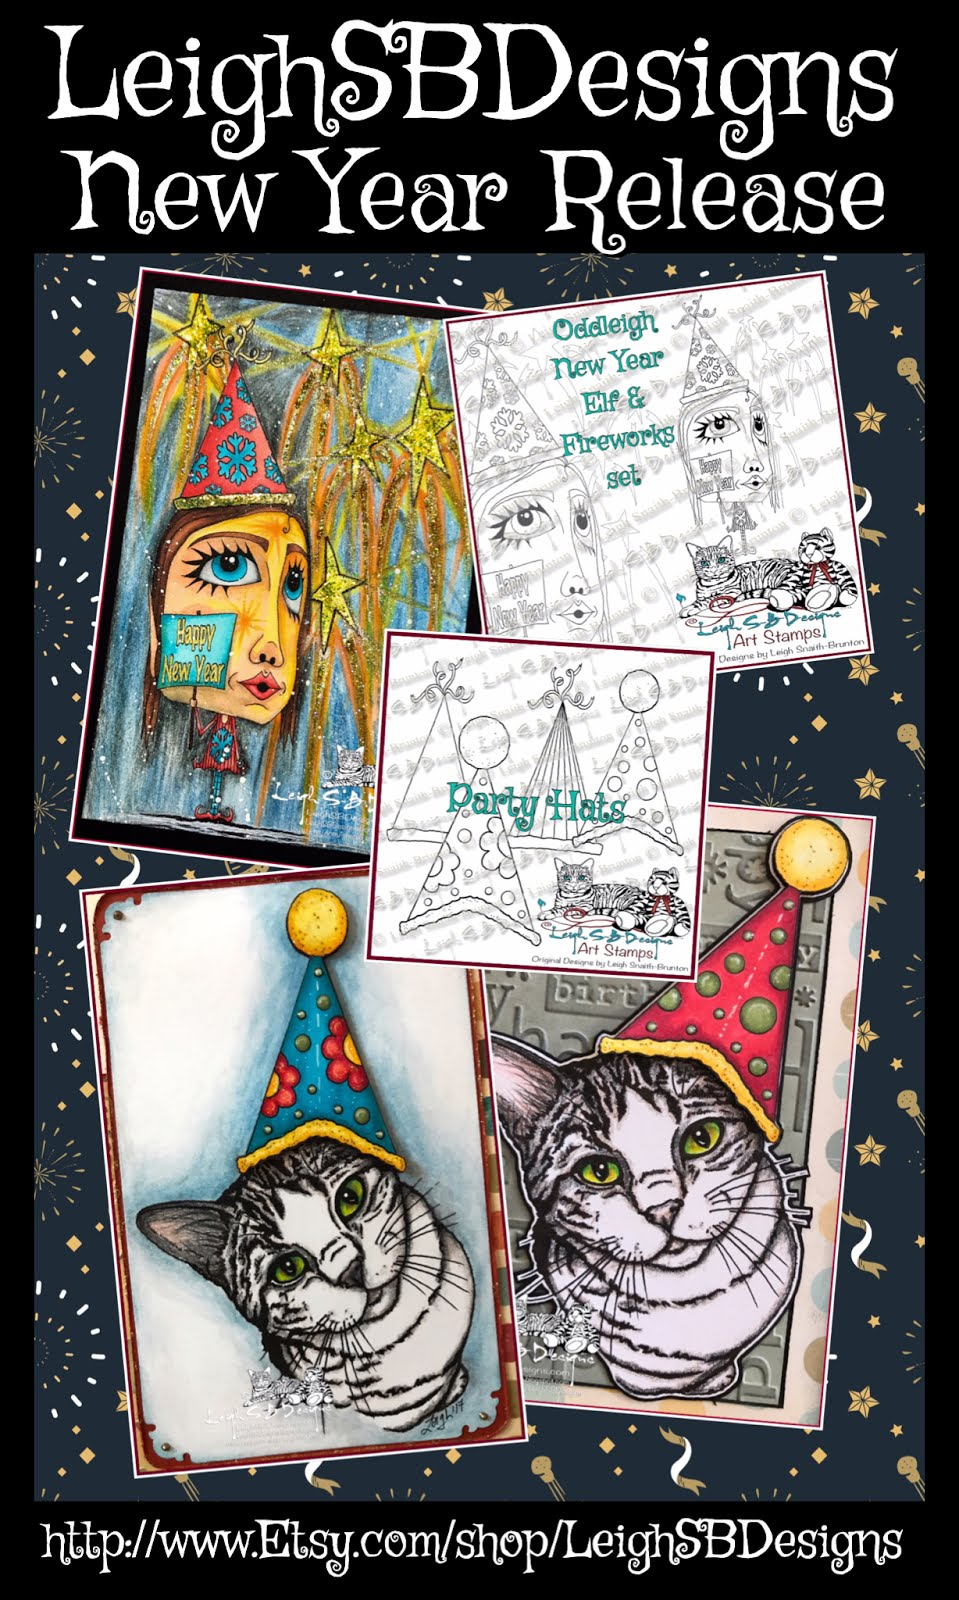 Oddleigh New Year Elf and Party Hats Pack Jan 2018 Release